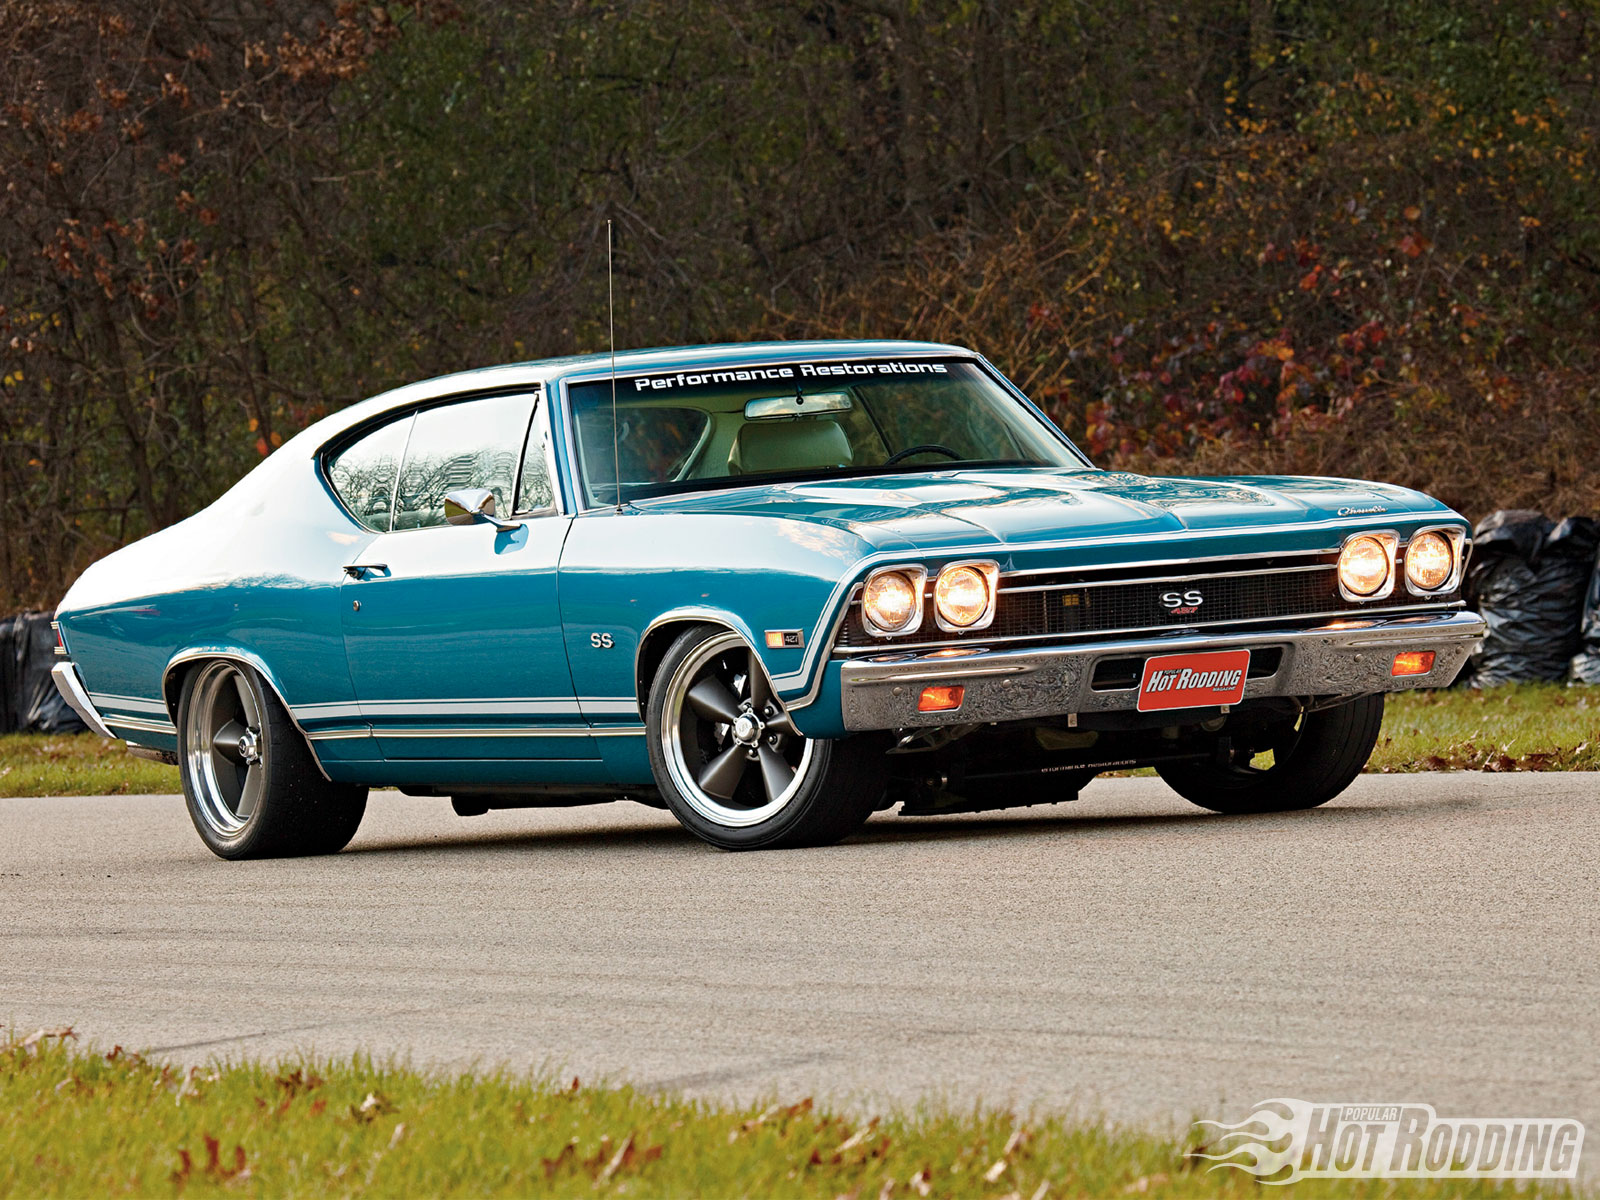 Chevy Chevelle SS 900 hp Computer Wallpapers Desktop Backgrounds 1600x1200